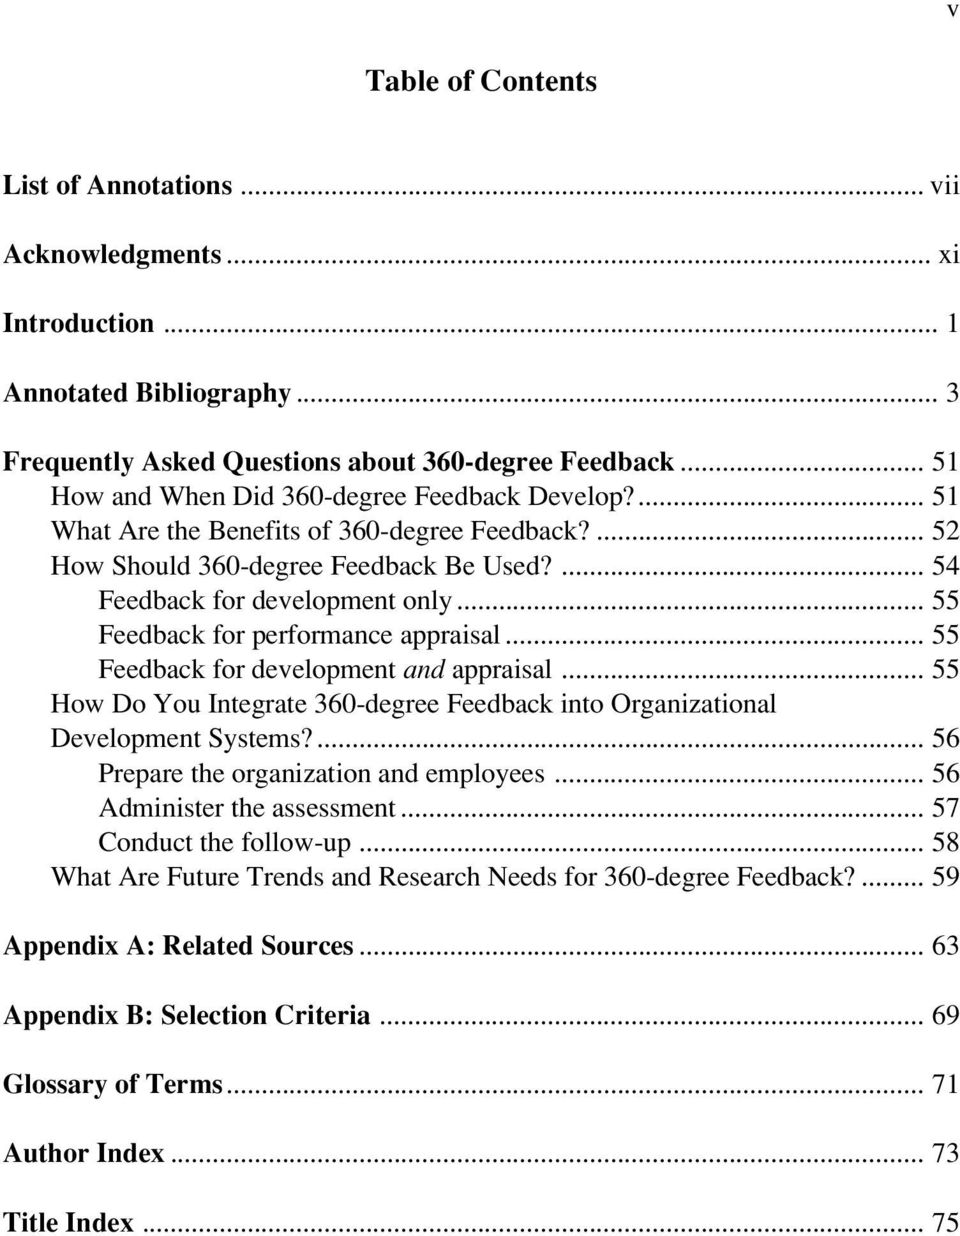 .. 55 Feedback for performance appraisal... 55 Feedback for development and appraisal... 55 How Do You Integrate 360-degree Feedback into Organizational Development Systems?